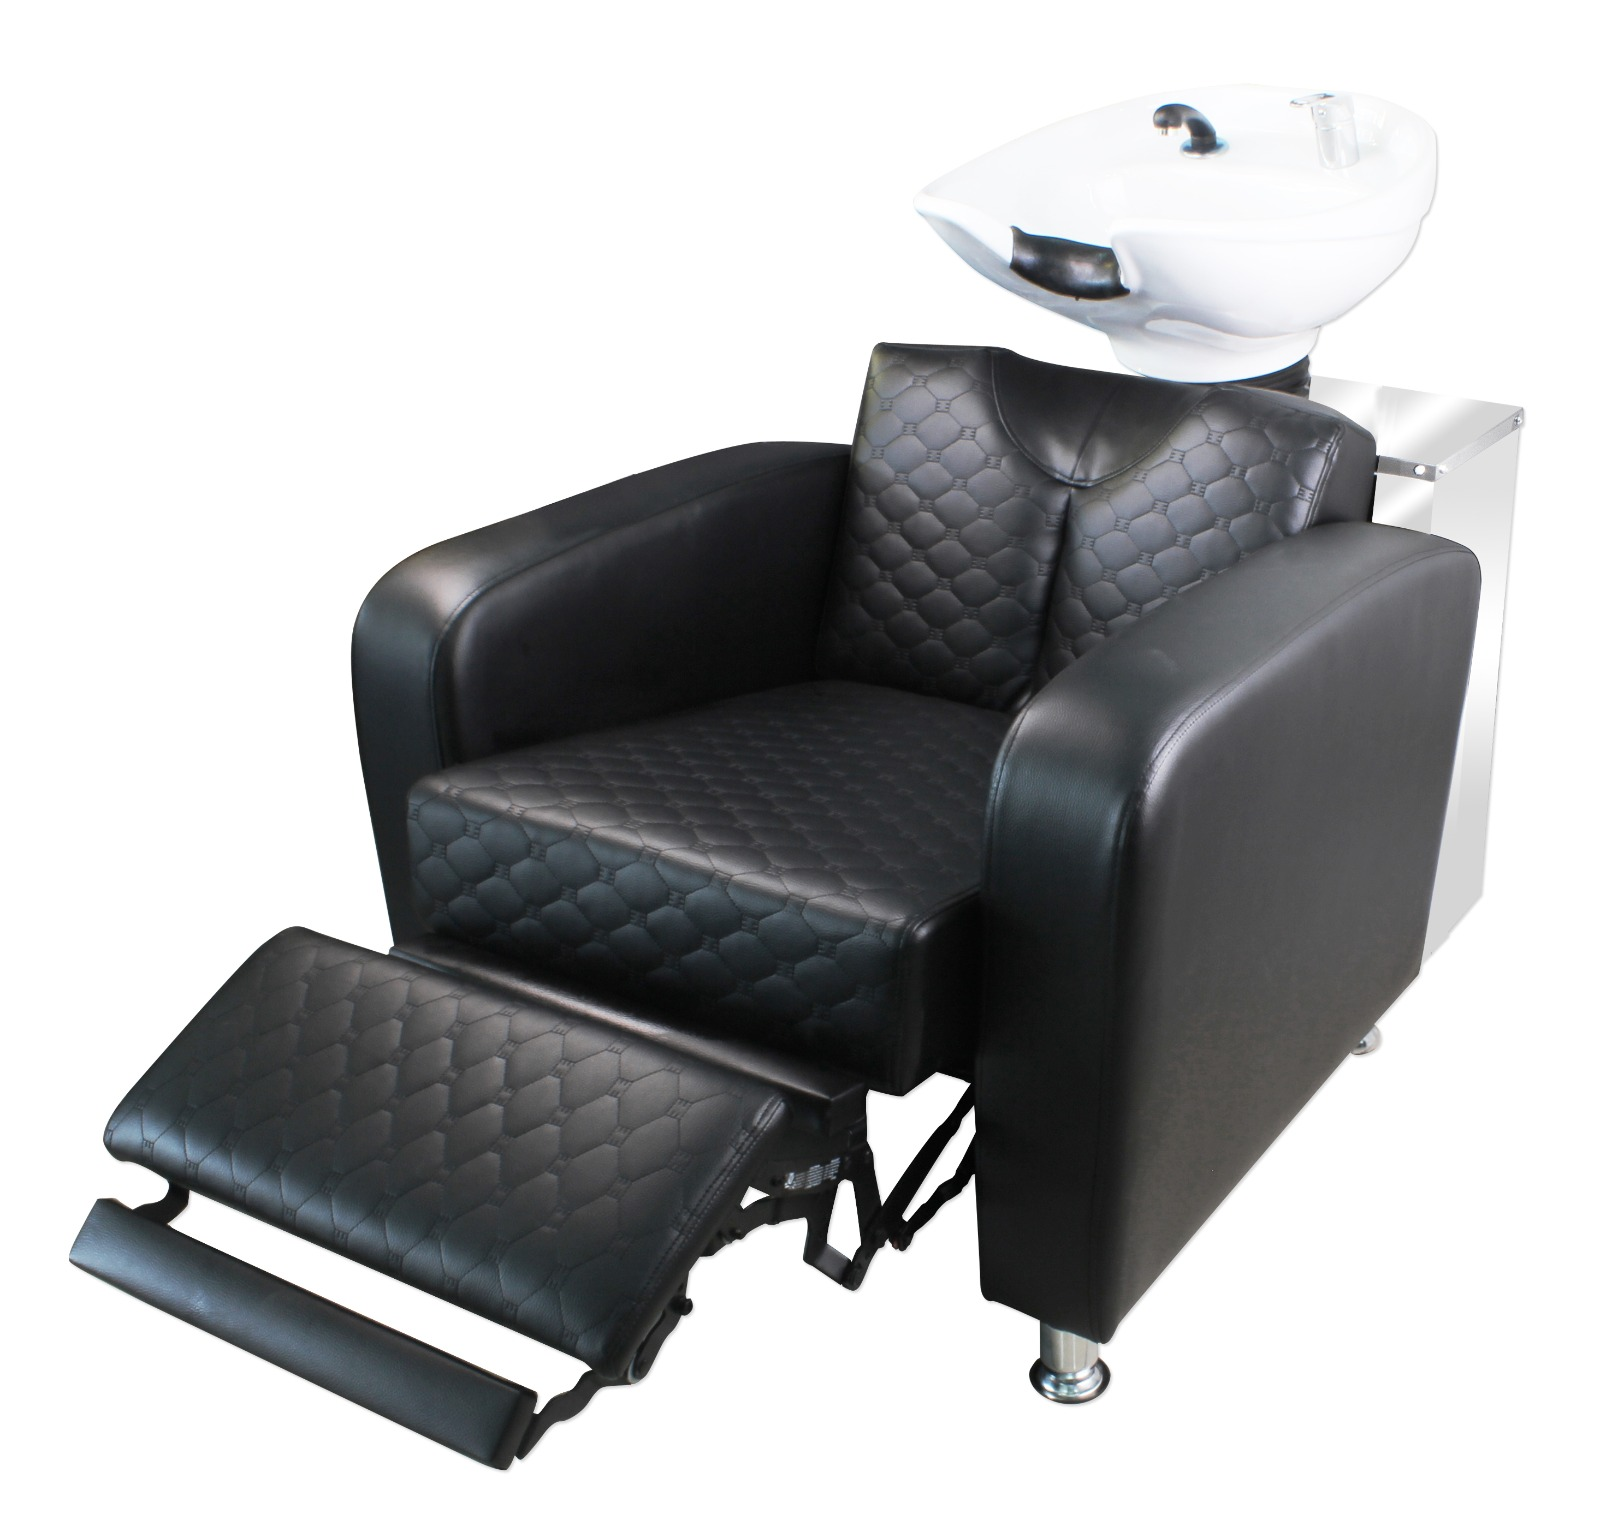 Hair Washing Chair With Footrest